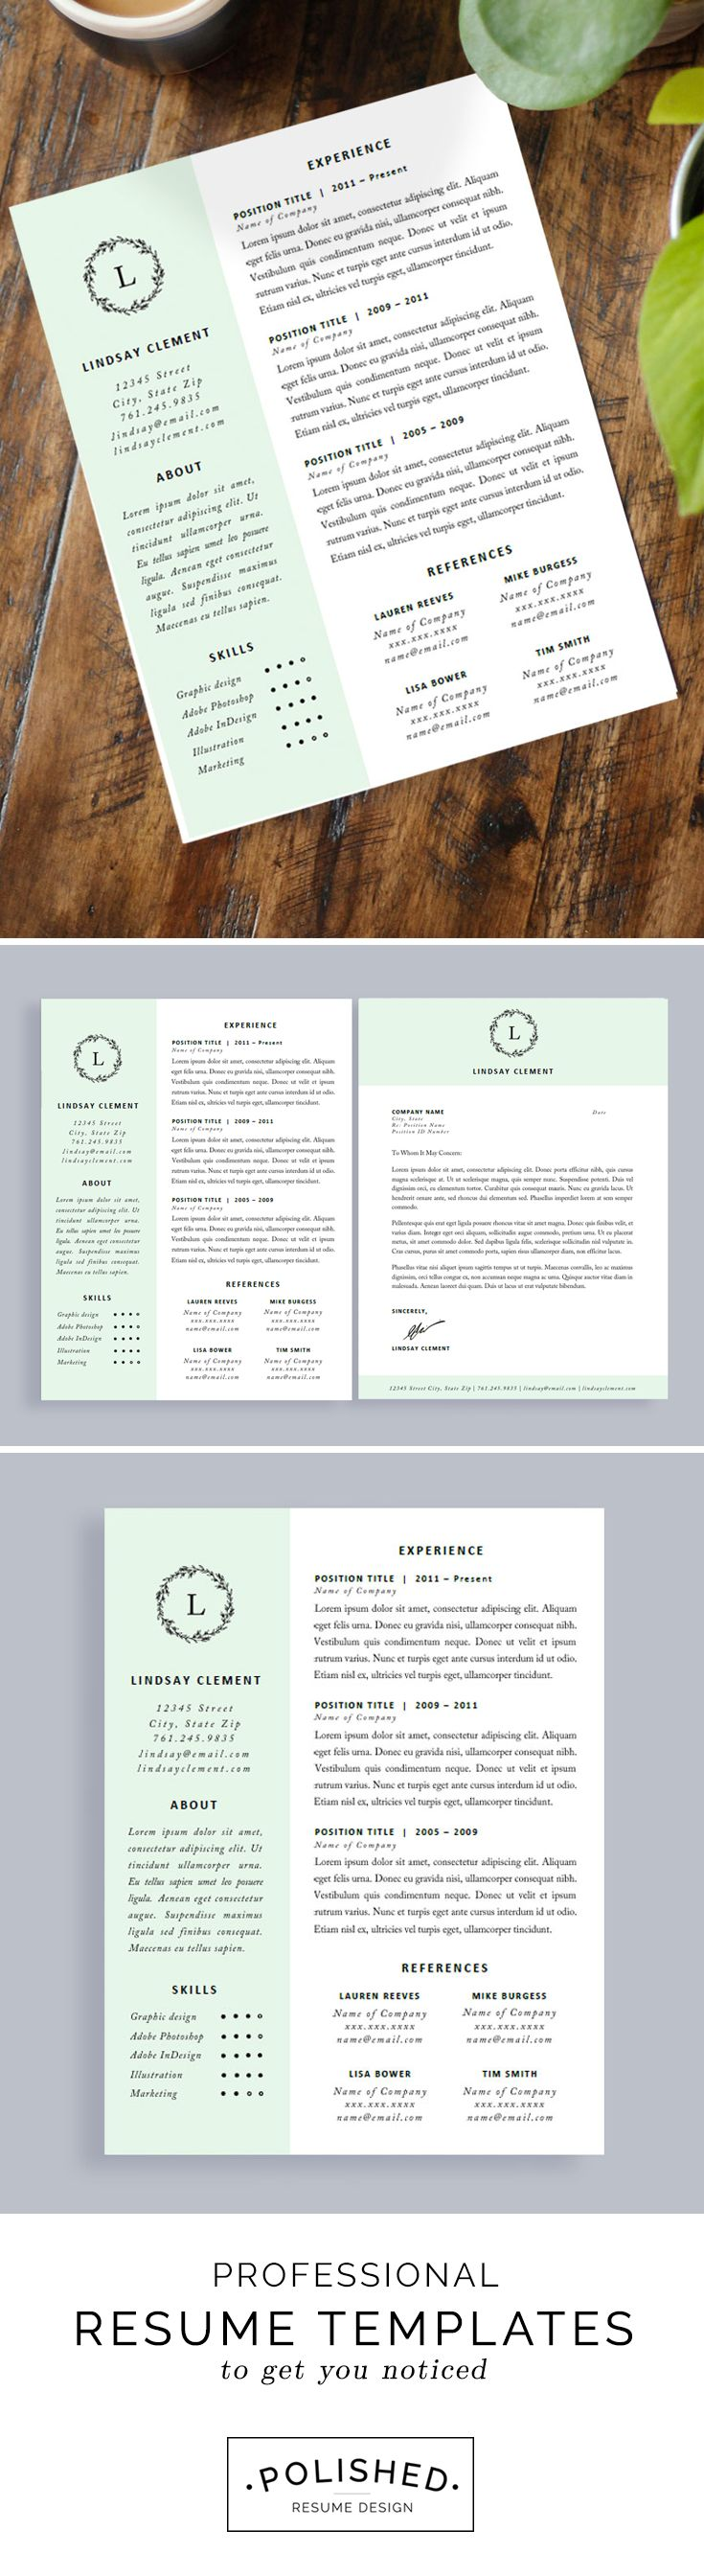 professional resume template cover letter cv professional modern creative resume template ms word for mac pc us letter best cv - Free Templates For Cover Letter For A Resume